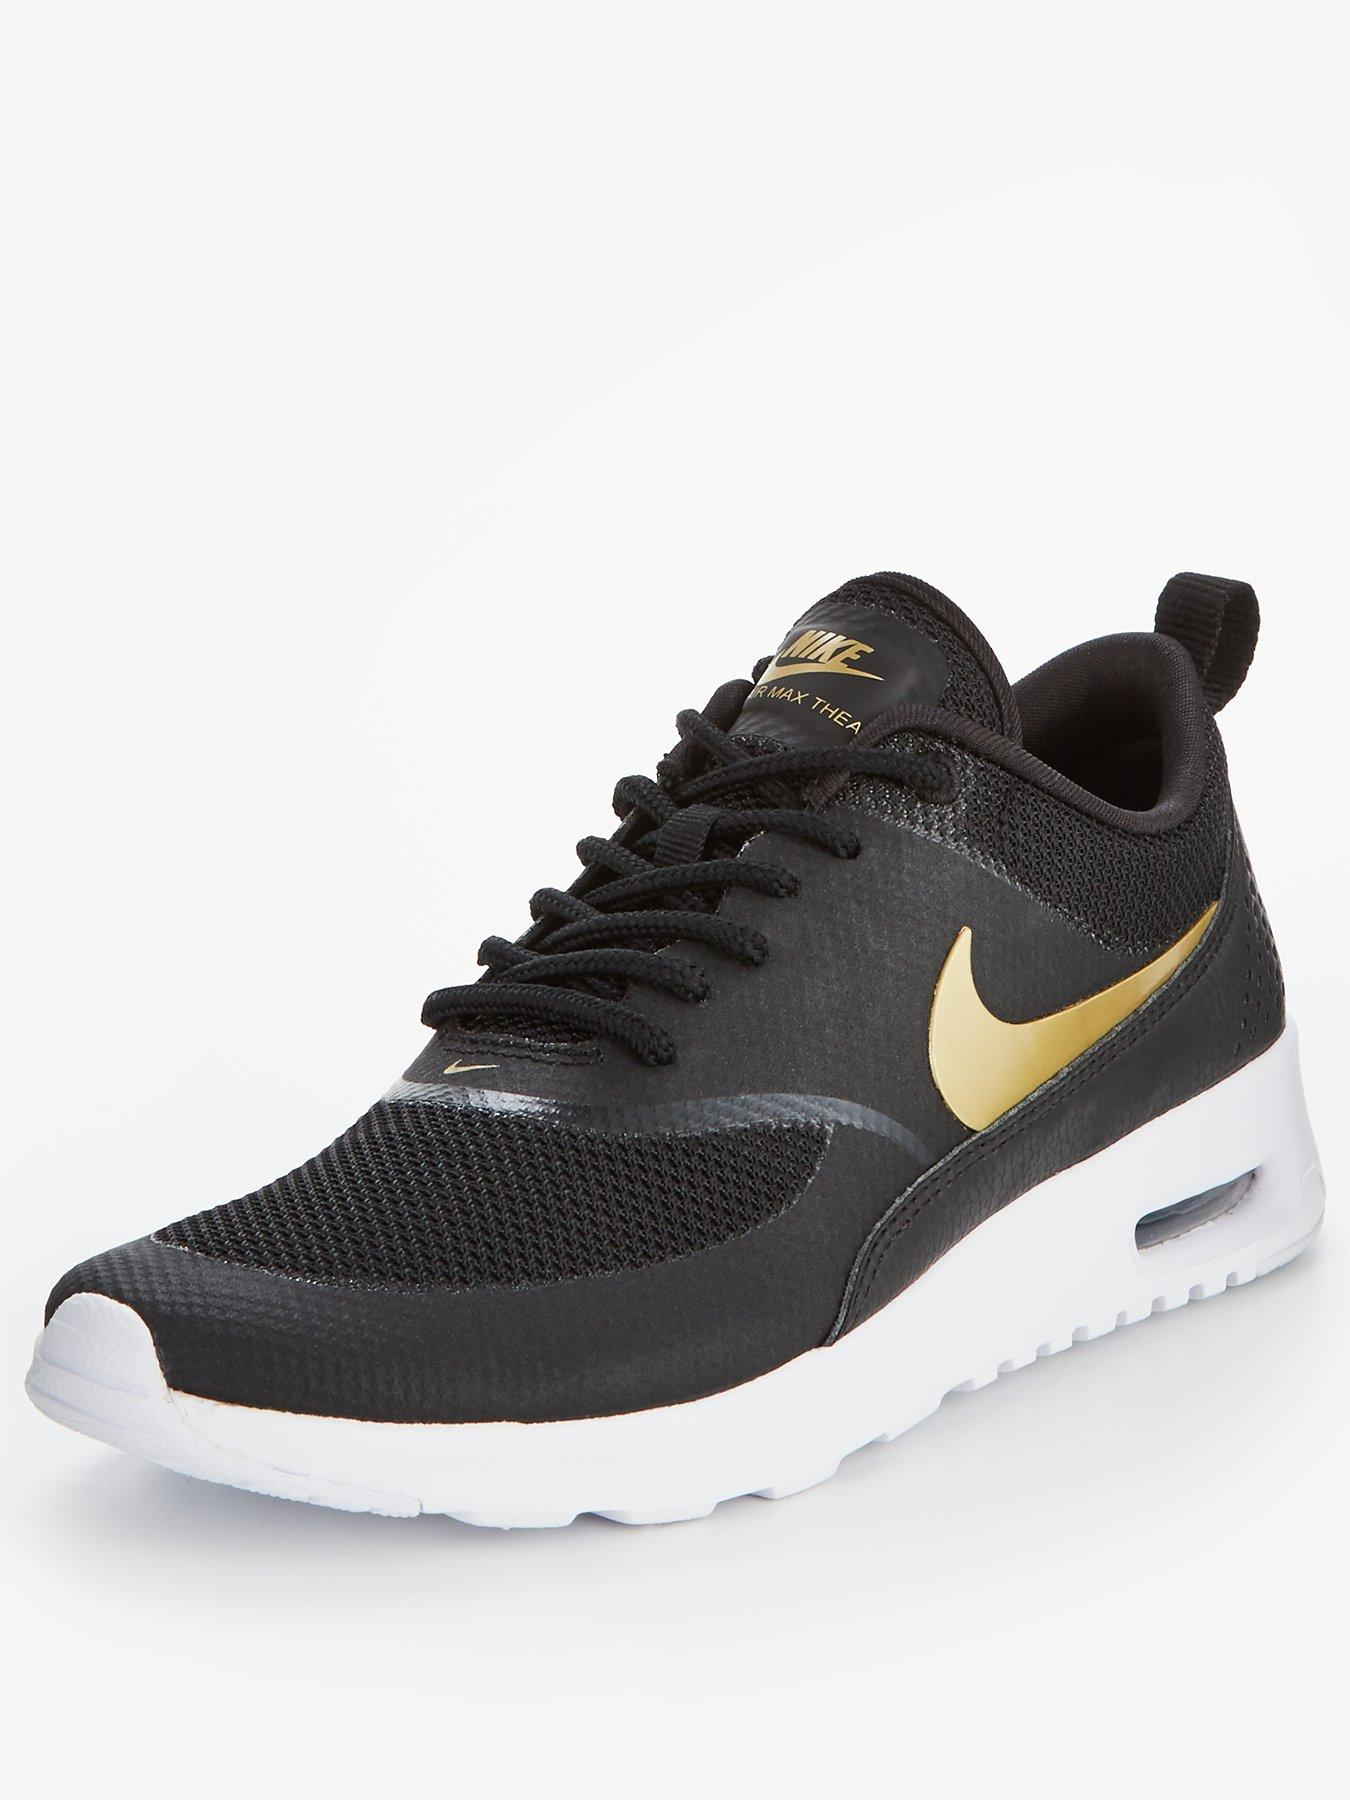 Nike Air Max Thea Metallic - Black/Gold